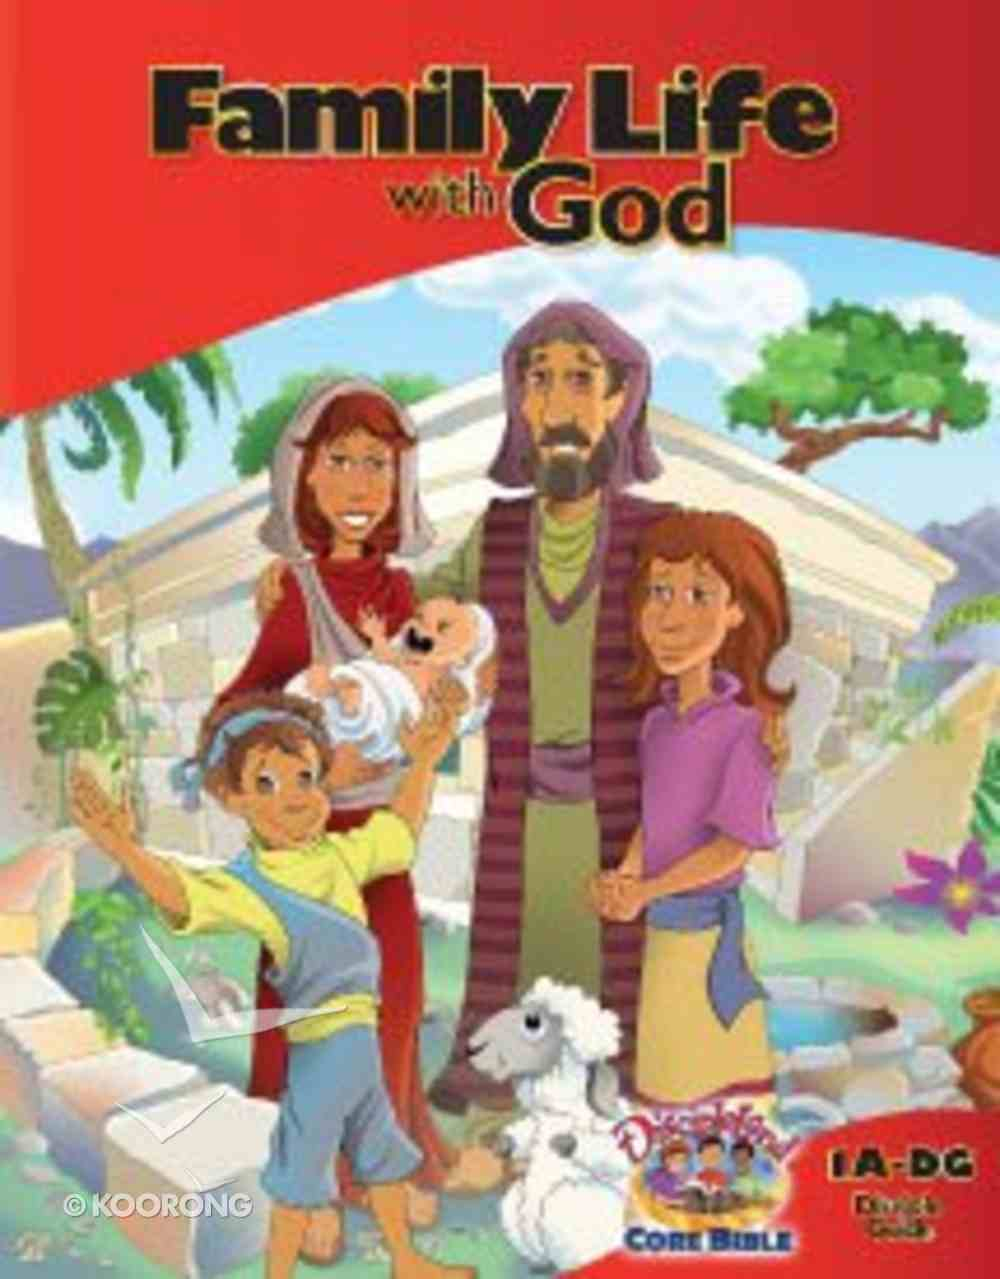 Dlc A1: Family Life With God Student Guide Ages 6-8 (Discipleland Level 1, Ages 6-8, Qtrs Abcd Series) Paperback